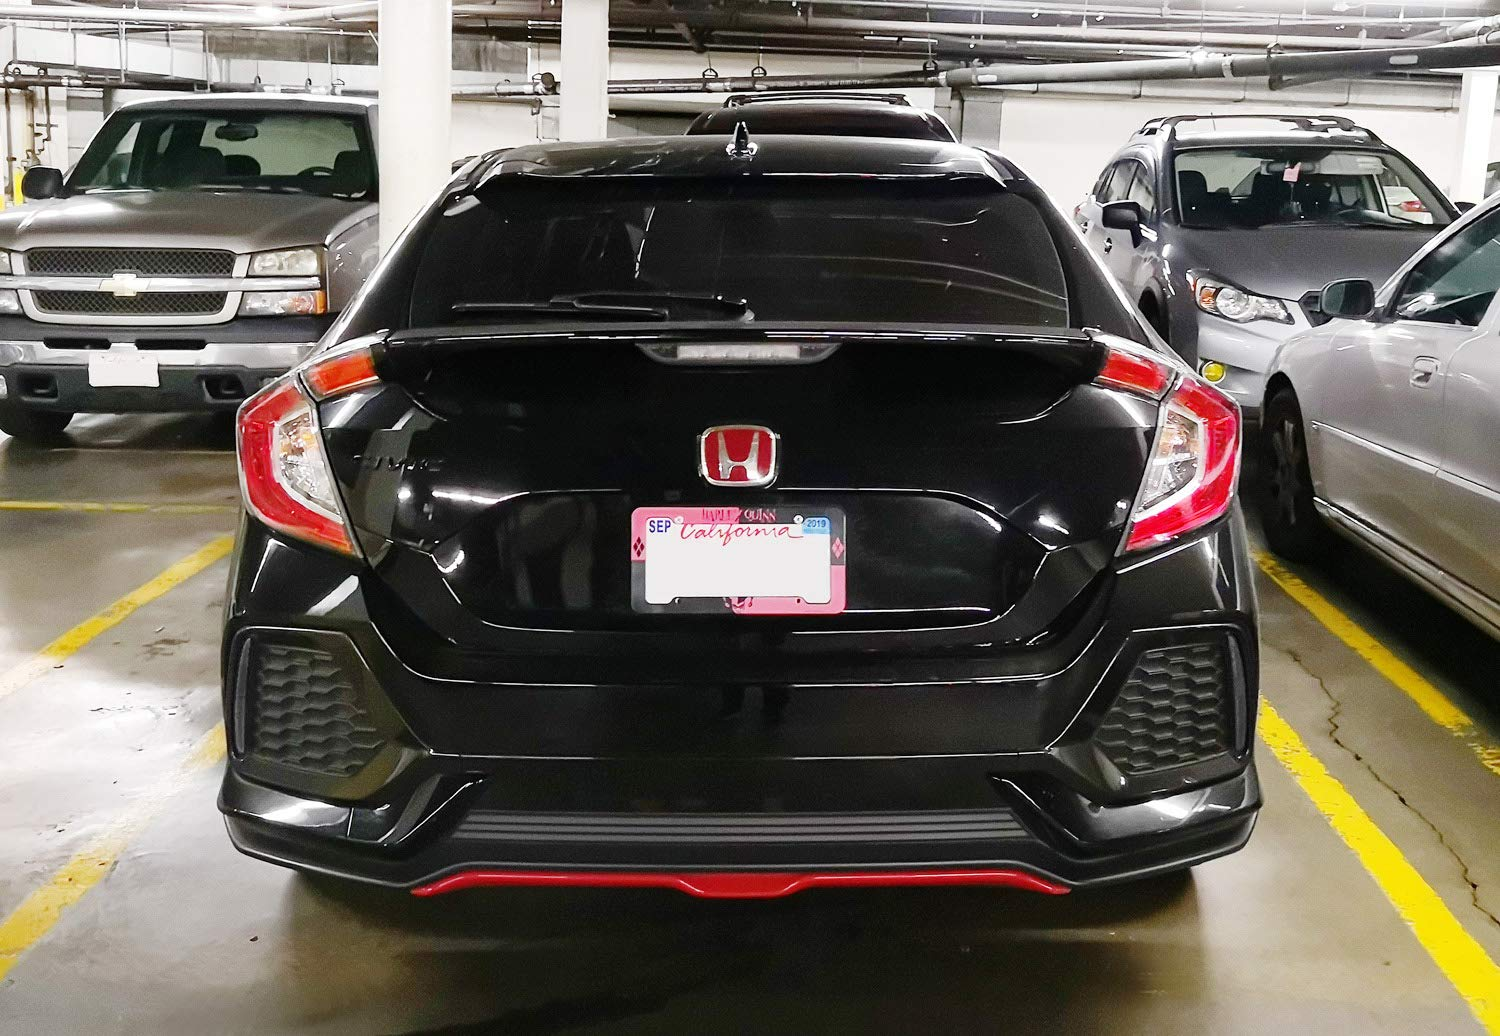 iJDMTOY Smoked Rear Bumper Reflector Lens Replacement For 2017-up Honda Civic Hatchback SI or Type-R Sedan OE-Spec LH RH Assembly